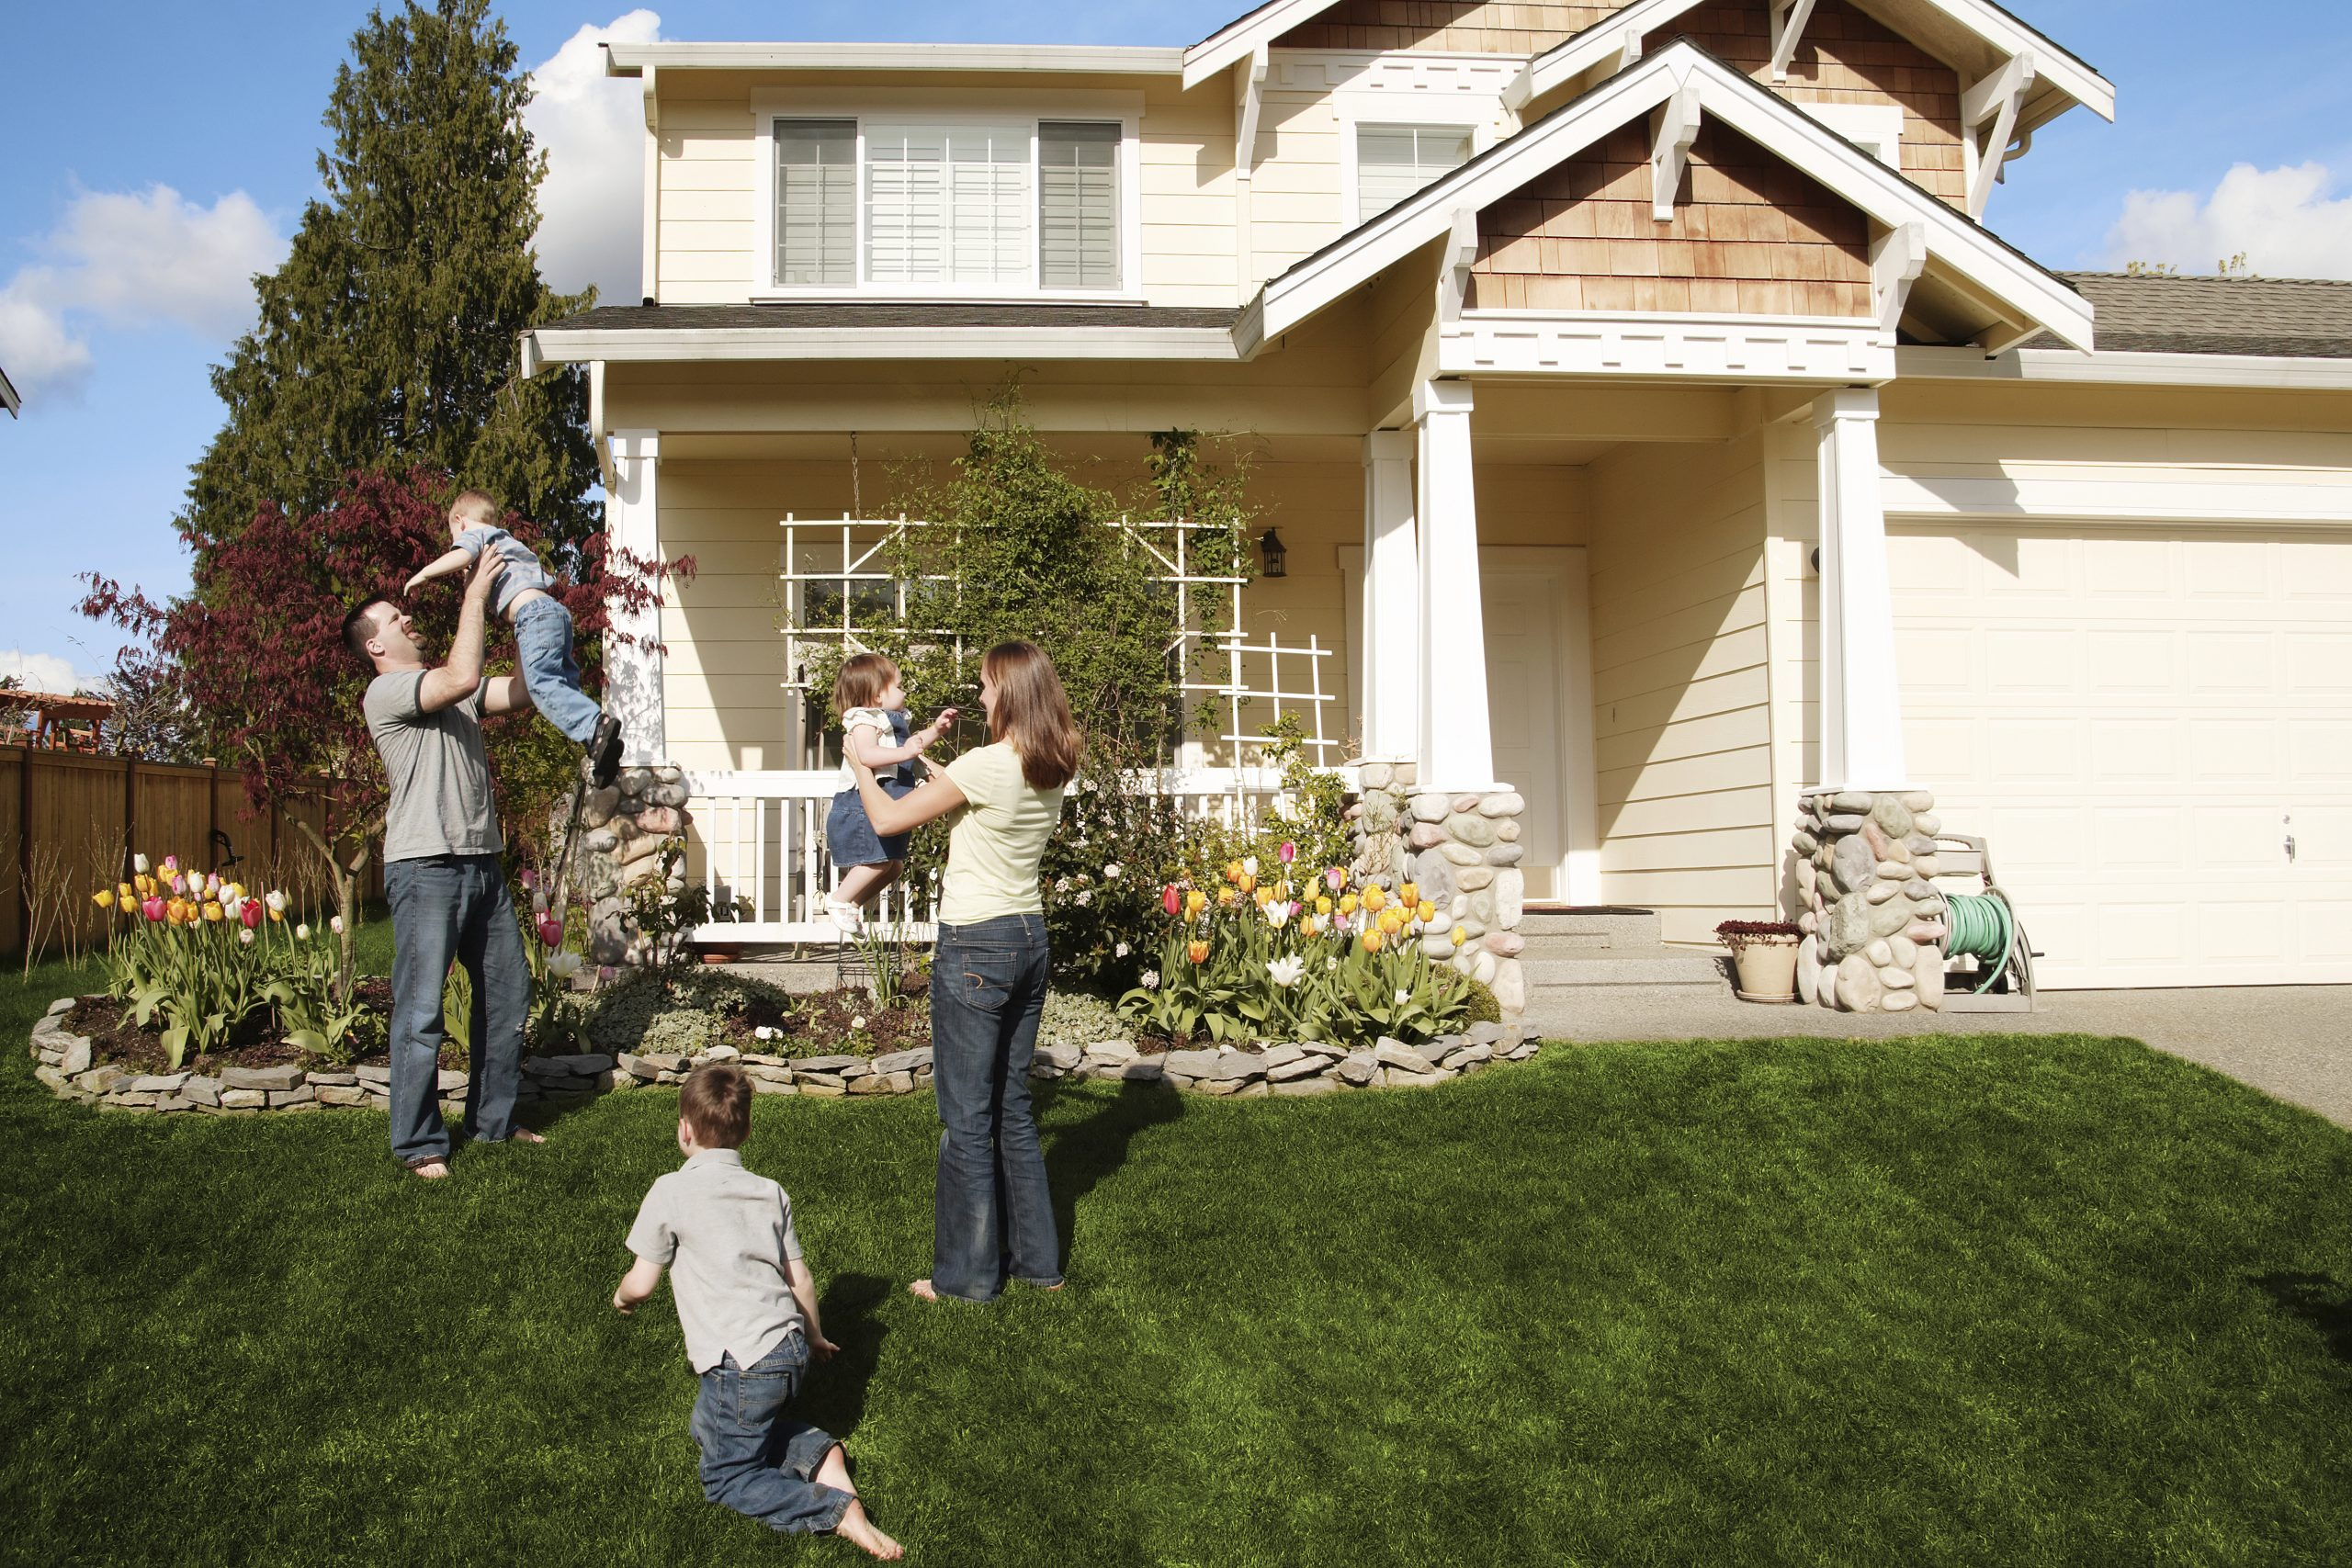 family in front of house - feeling happy and secure